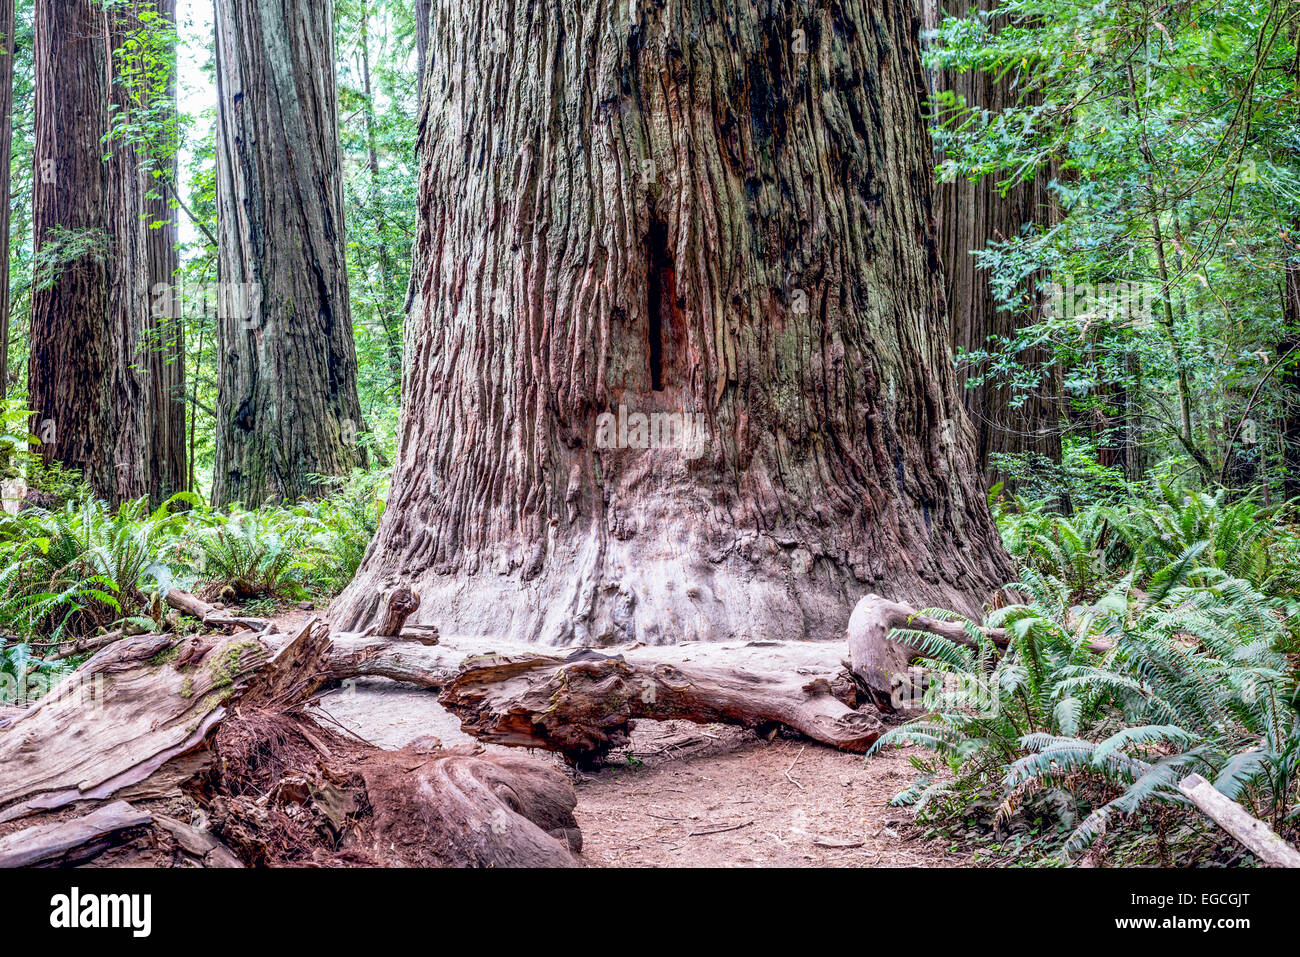 Giant redwood trees. Jedediah Smith Redwoods State Park, California, United States. Stock Photo